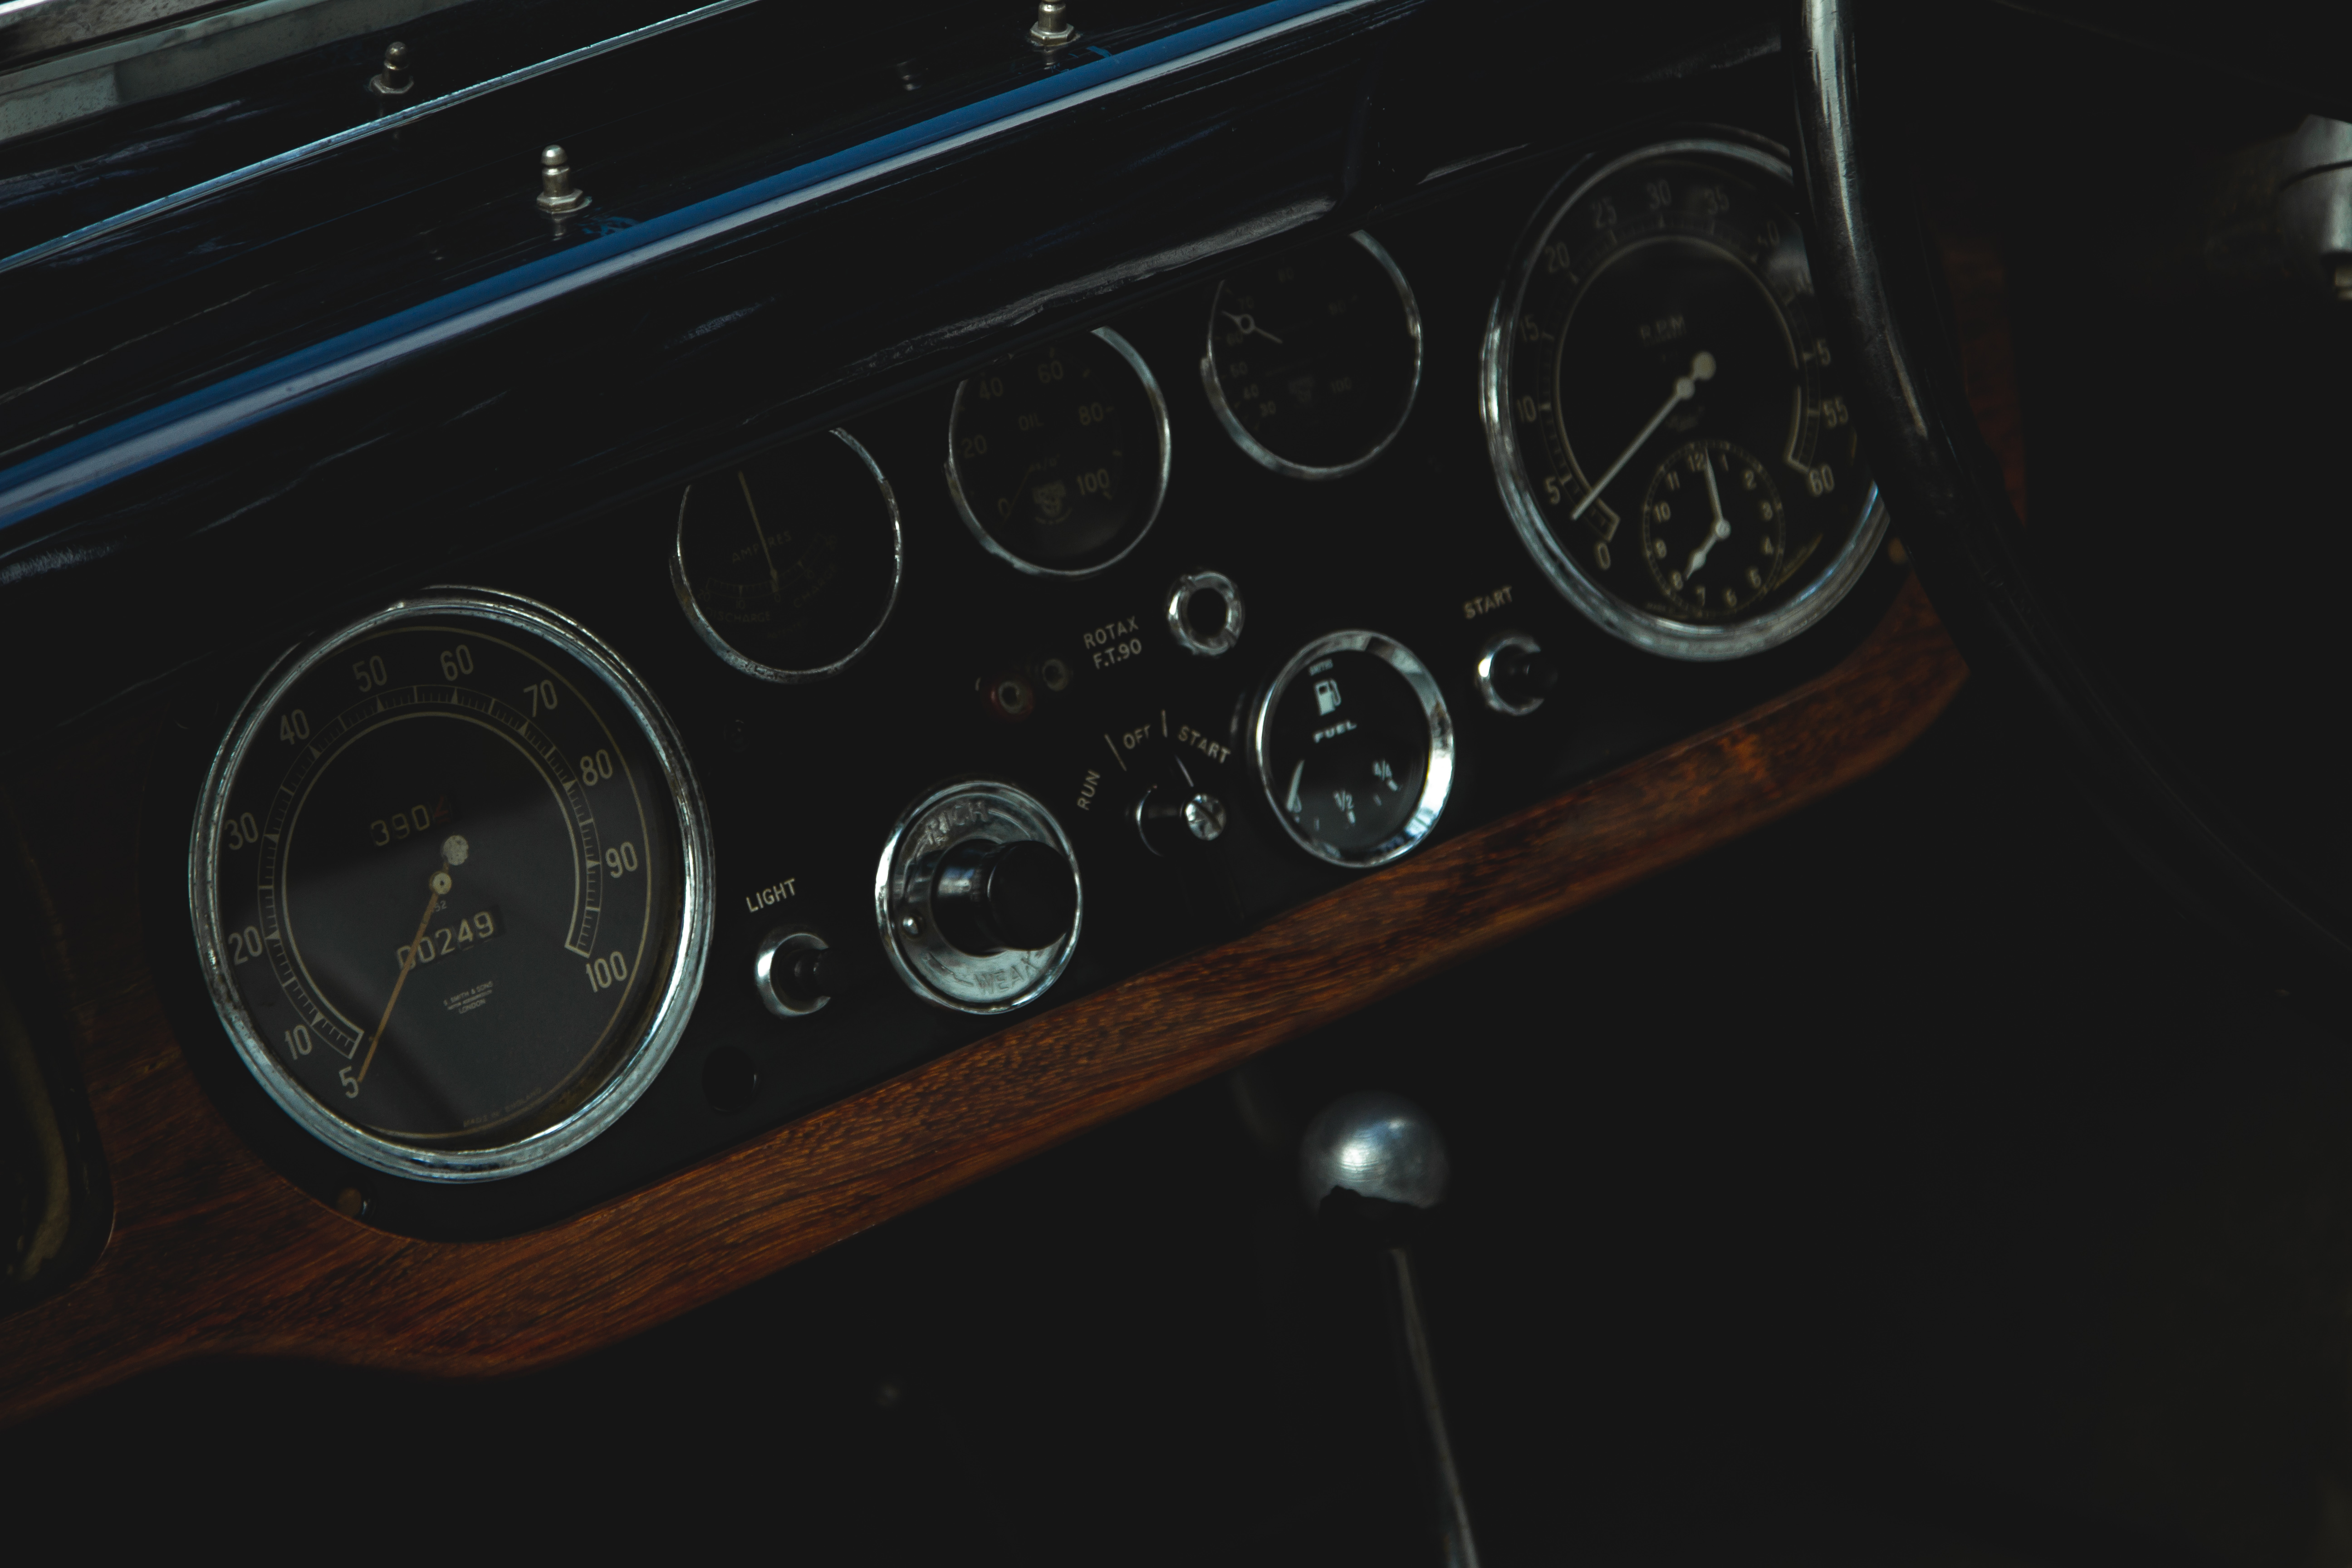 Photography of a Classic Car Gauge